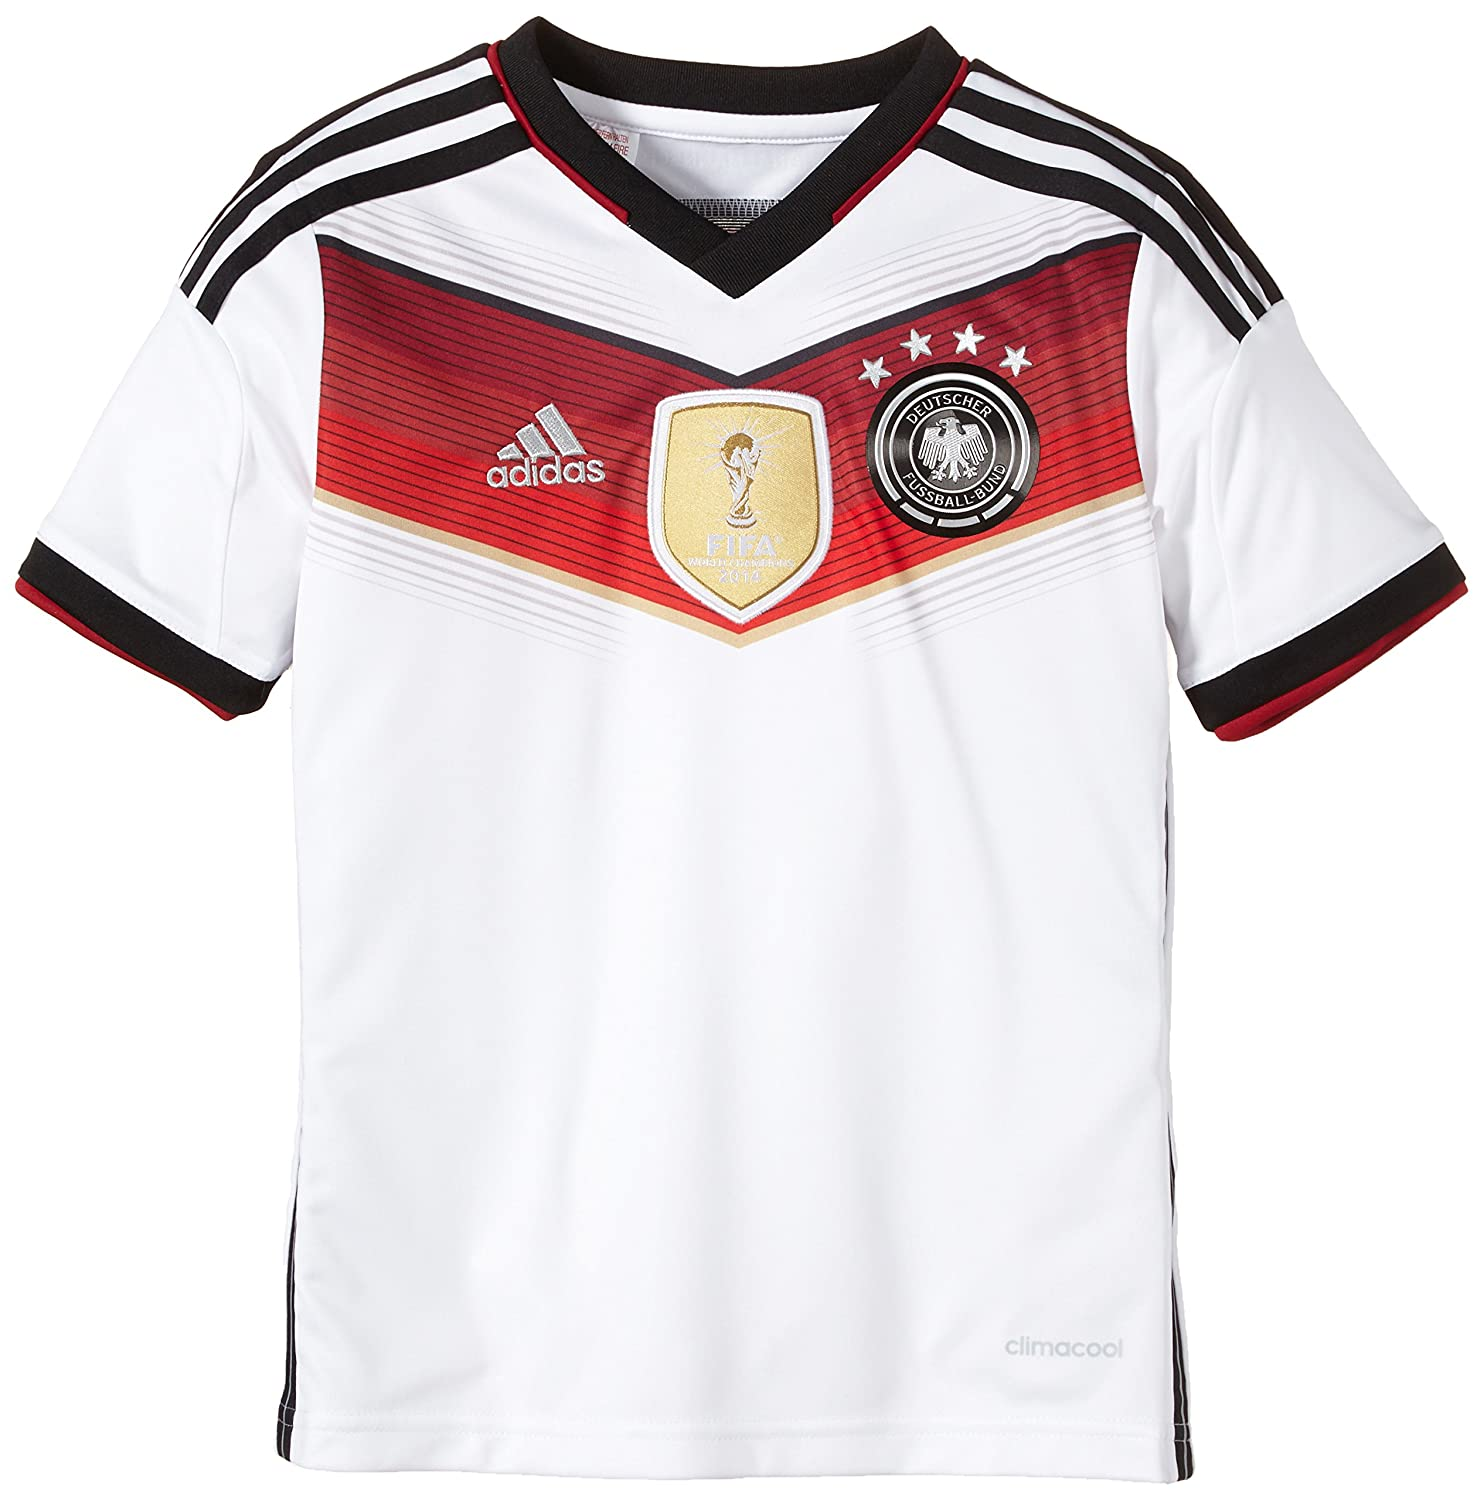 8bcdbe39c07 adidas Children's DFB German National Team Home Football Shirt with 4 Stars  Multi-Coloured multicoloured Size:152 (EU): Amazon.co.uk: Sports & Outdoors